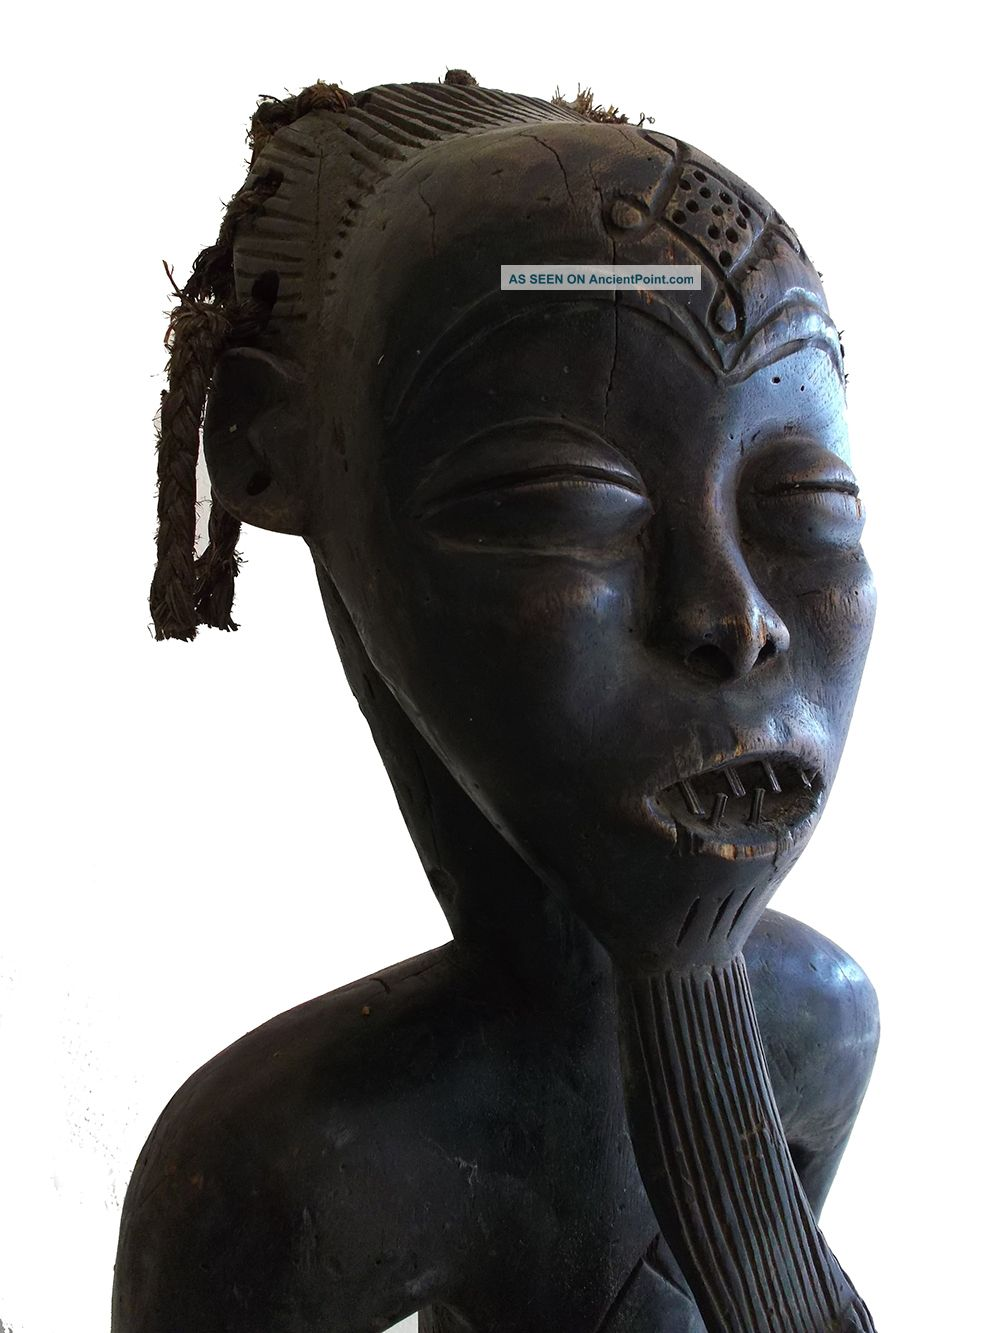 Item 027 Chokwe Tribe Seated Ancestral Figure Congo Zaire Ritual African Statue Sculptures & Statues photo